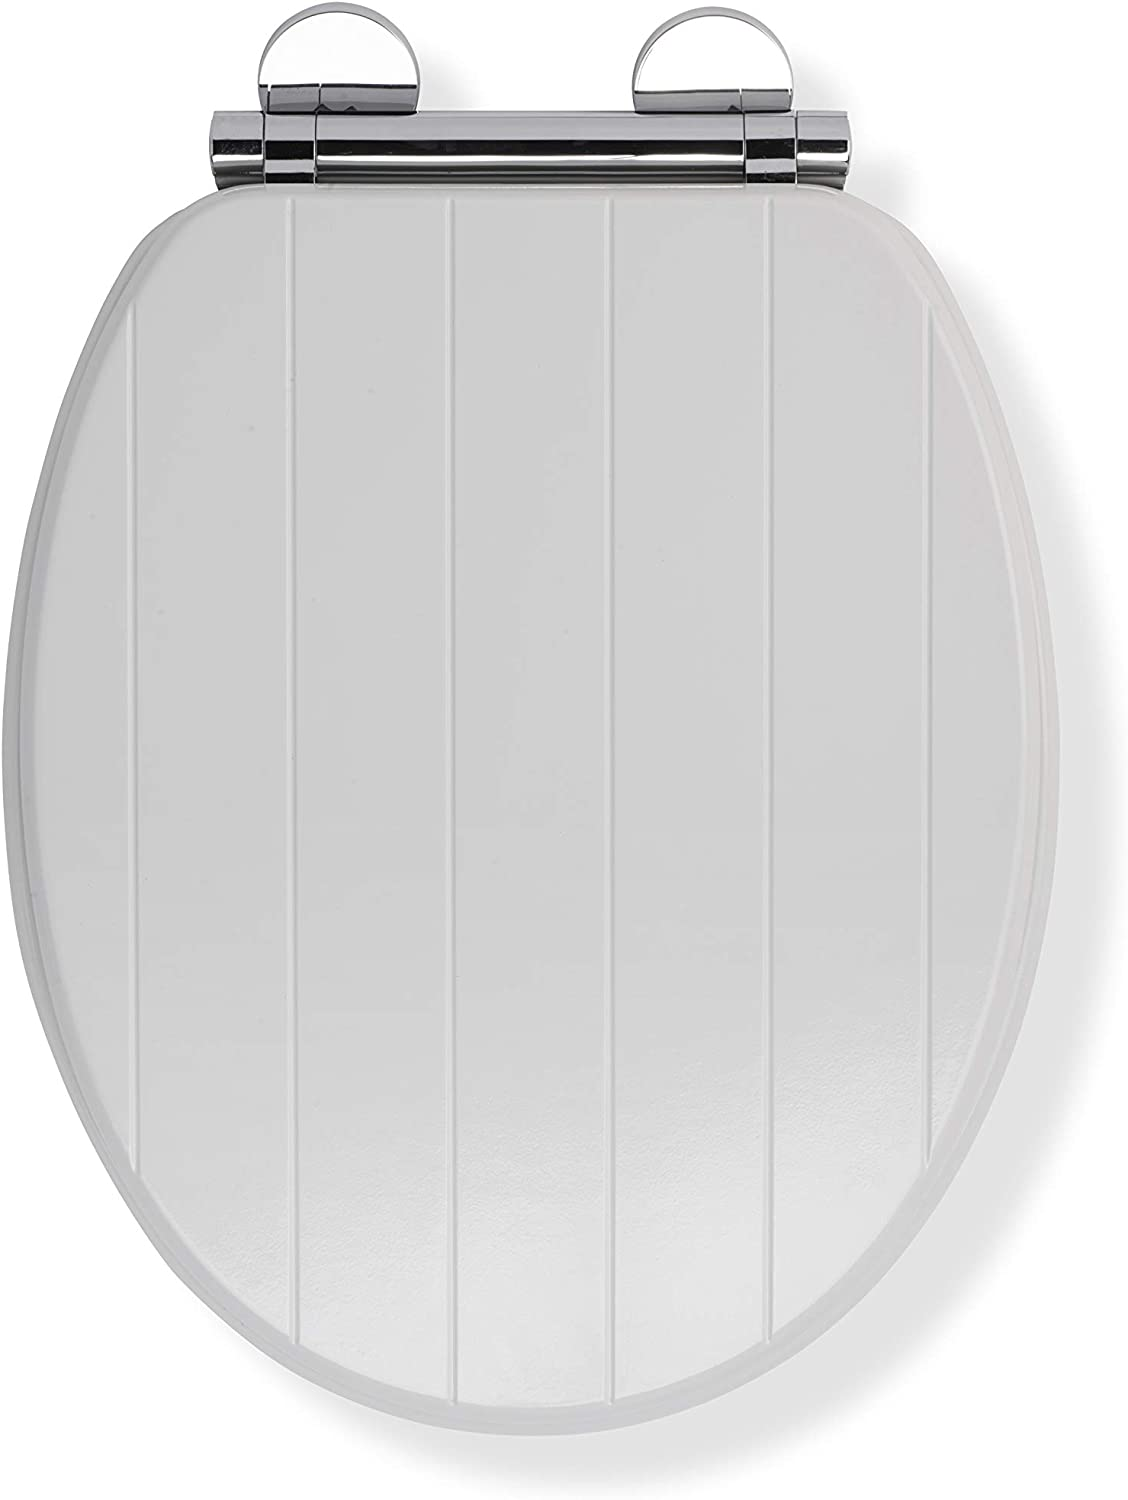 Croydex Flexi-Fix Portland Always Fits Never Slips Slow Close Anti Bacterial Toilet Seat, Wood, White, 45.5 x 37.5 x 6 cm